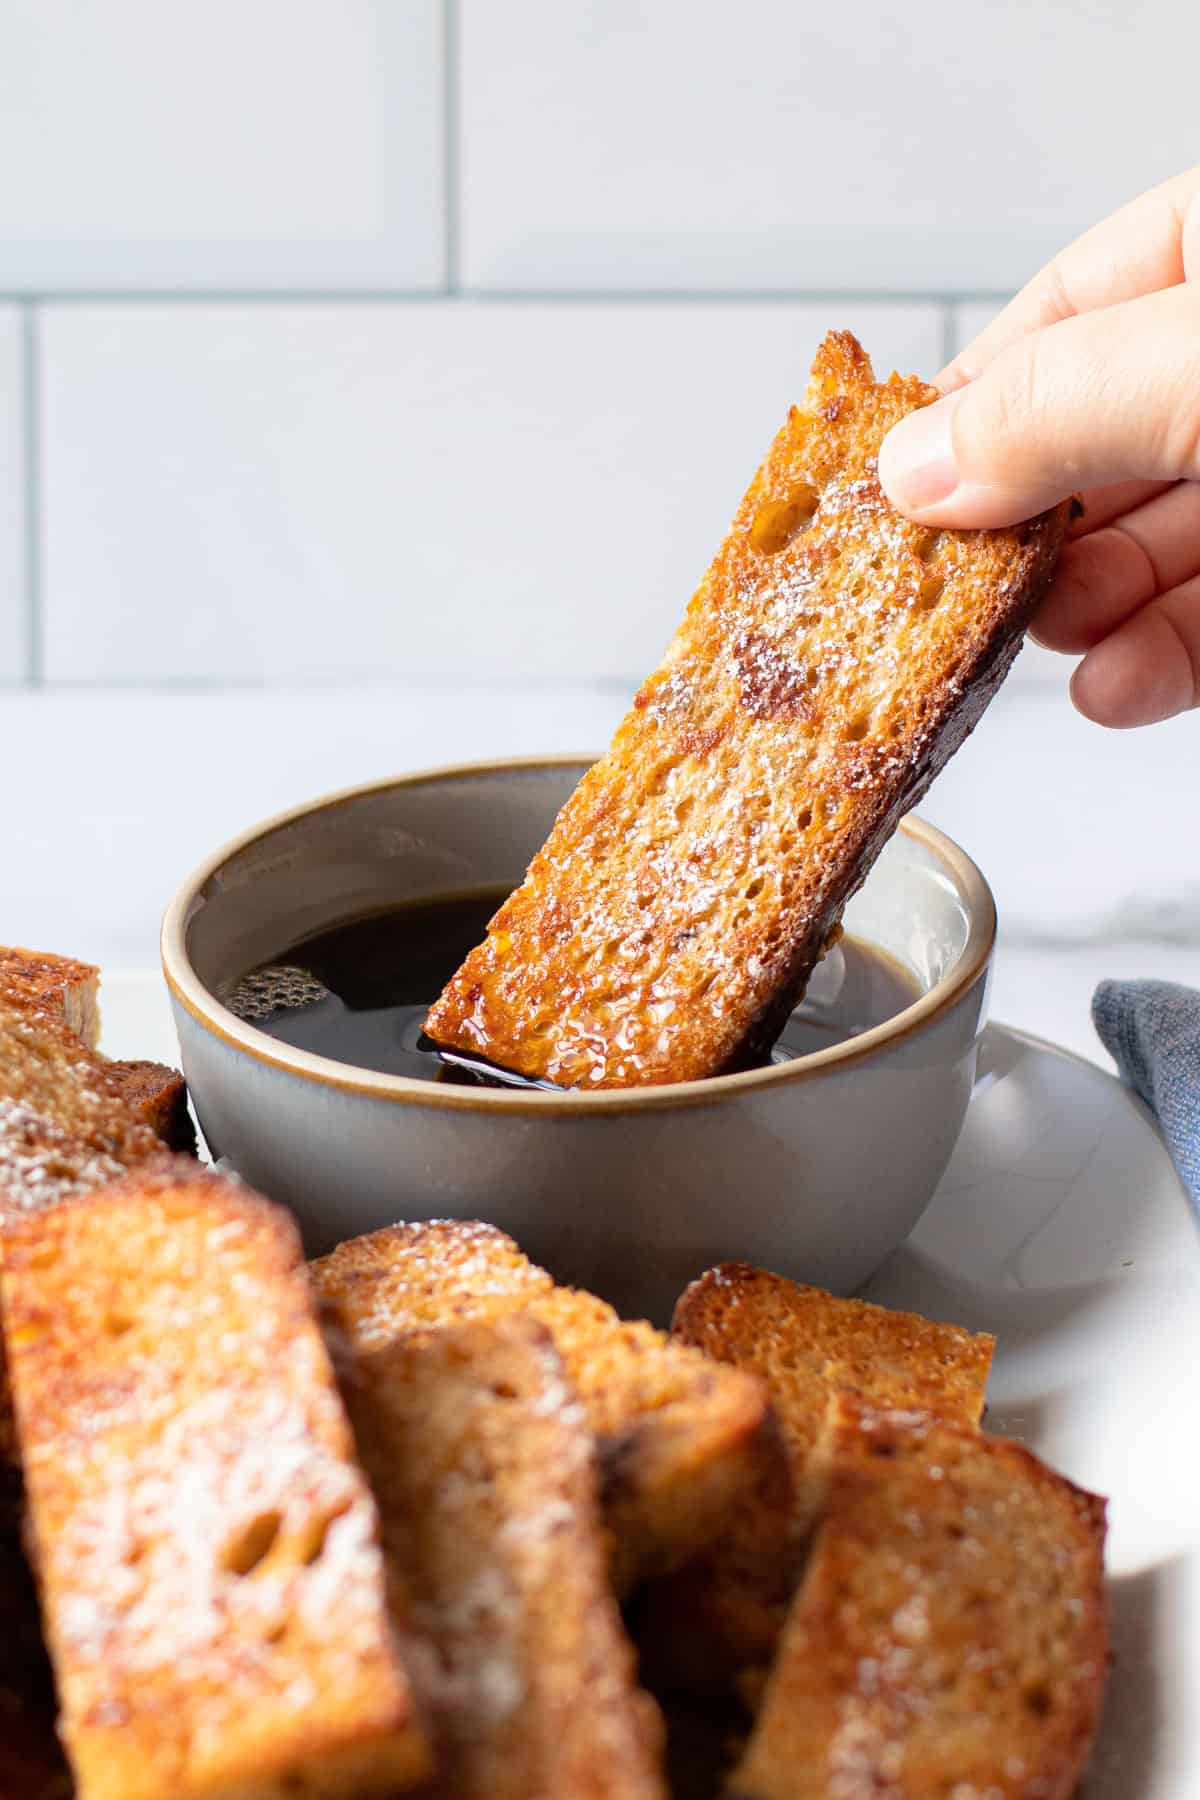 French toast sticks being dipped in maple syrup.